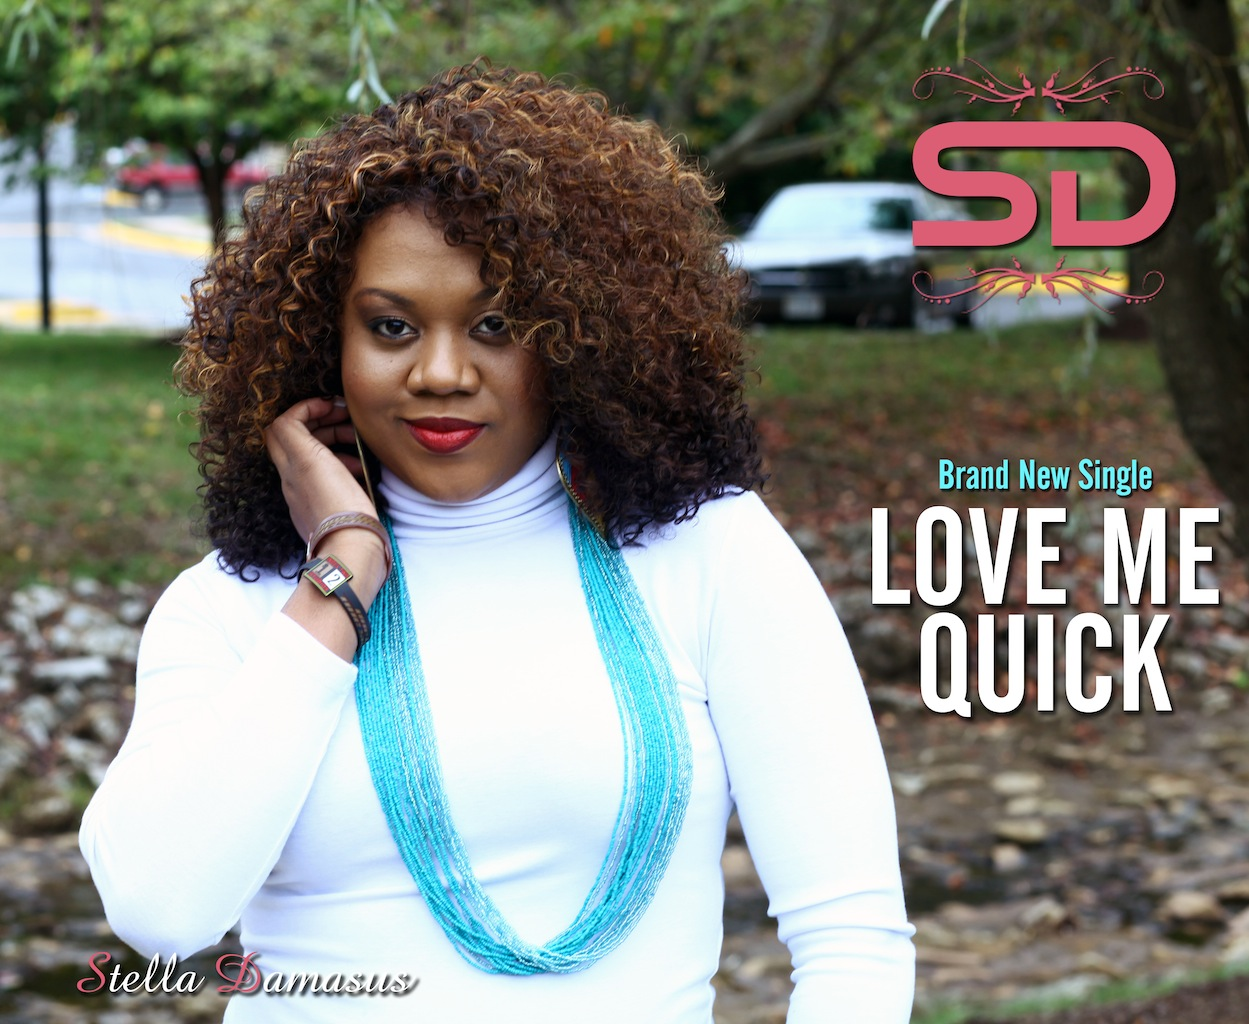 EsDee [Stella Damasus] - Love Me Quick Artwork | AceWorldTeam.com